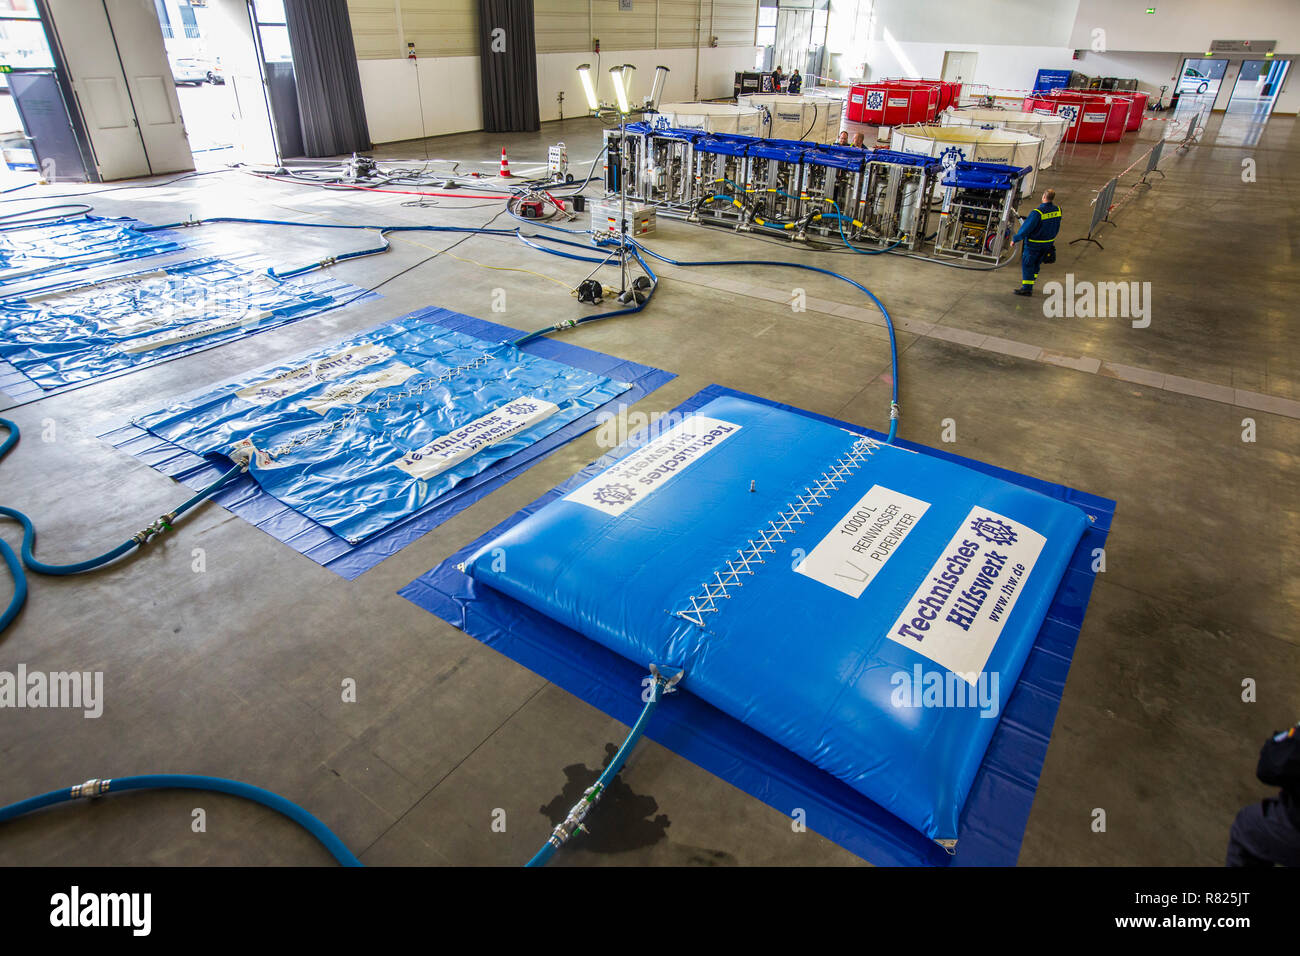 Drinking water treatment plant of the THW, Federal Agency for Technical Relief, TWAA UF-15, mobile water supply system for use - Stock Image